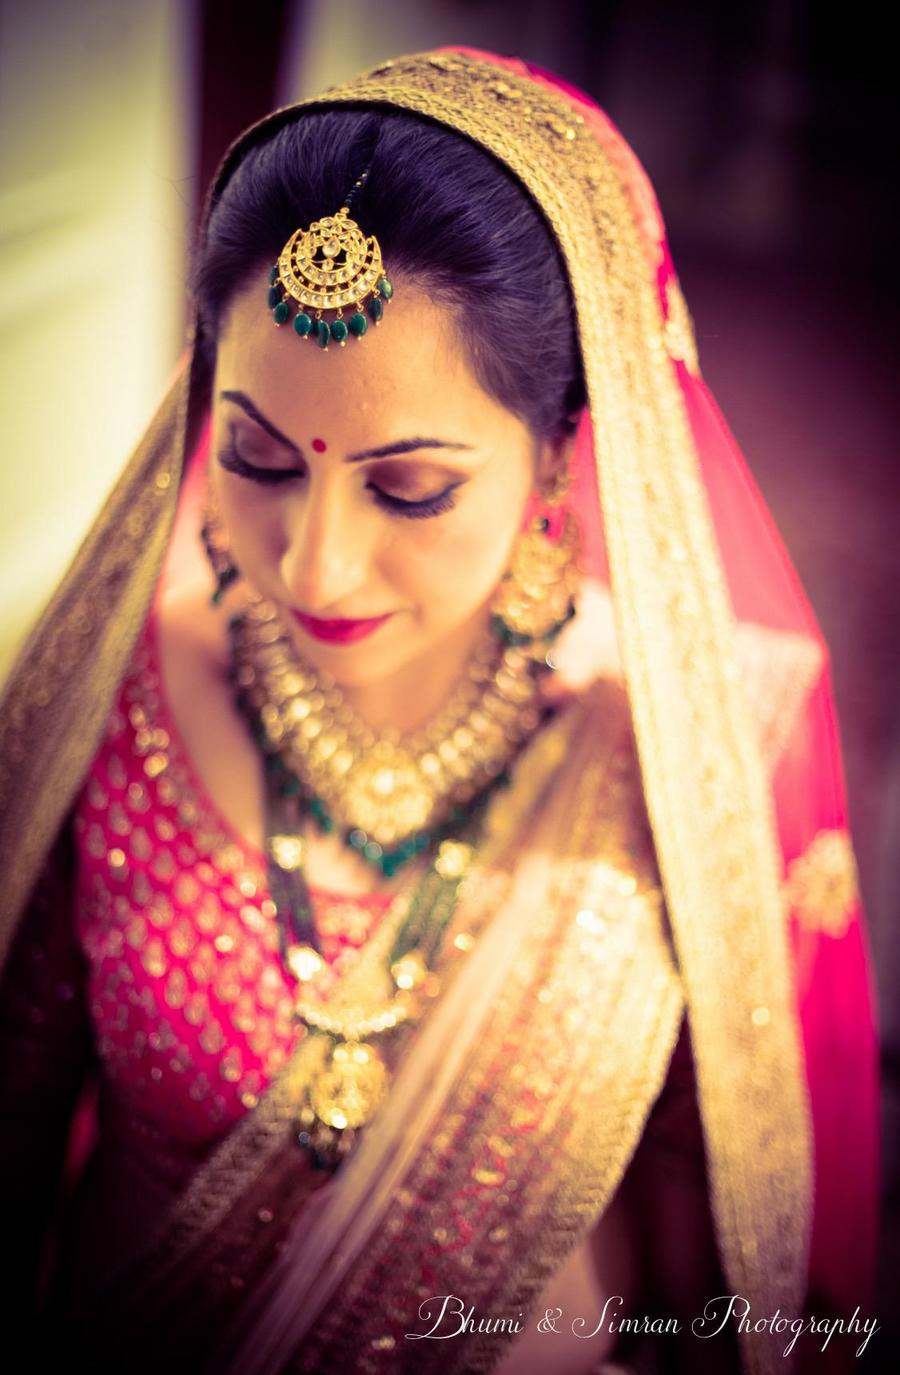 Bhumi & Simran Photography | Wedding Photographers in Delhi |